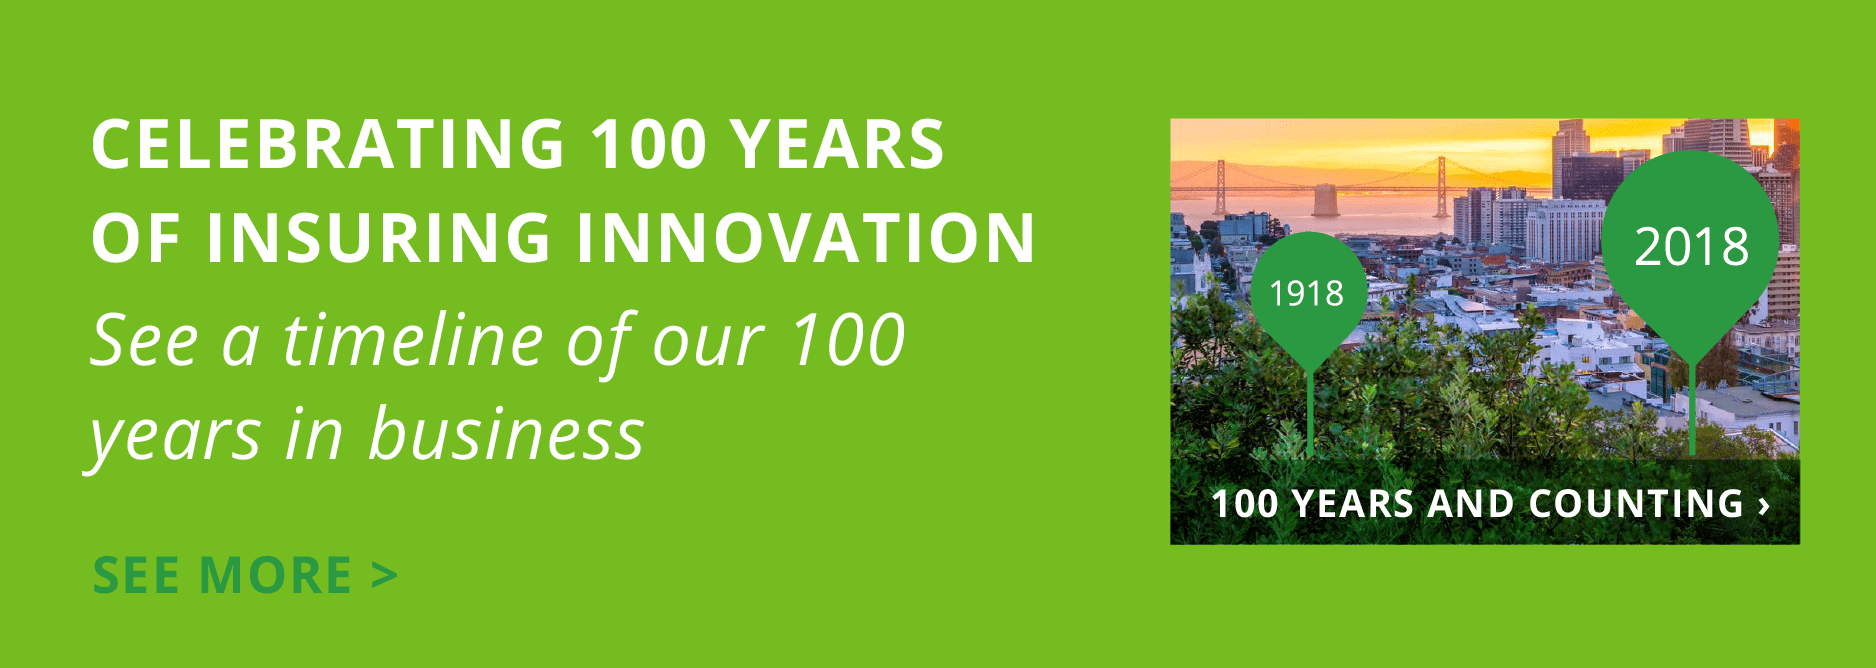 Woodruff Sawyer celebrates 100 years of Insuring Innovation. Click to read more.